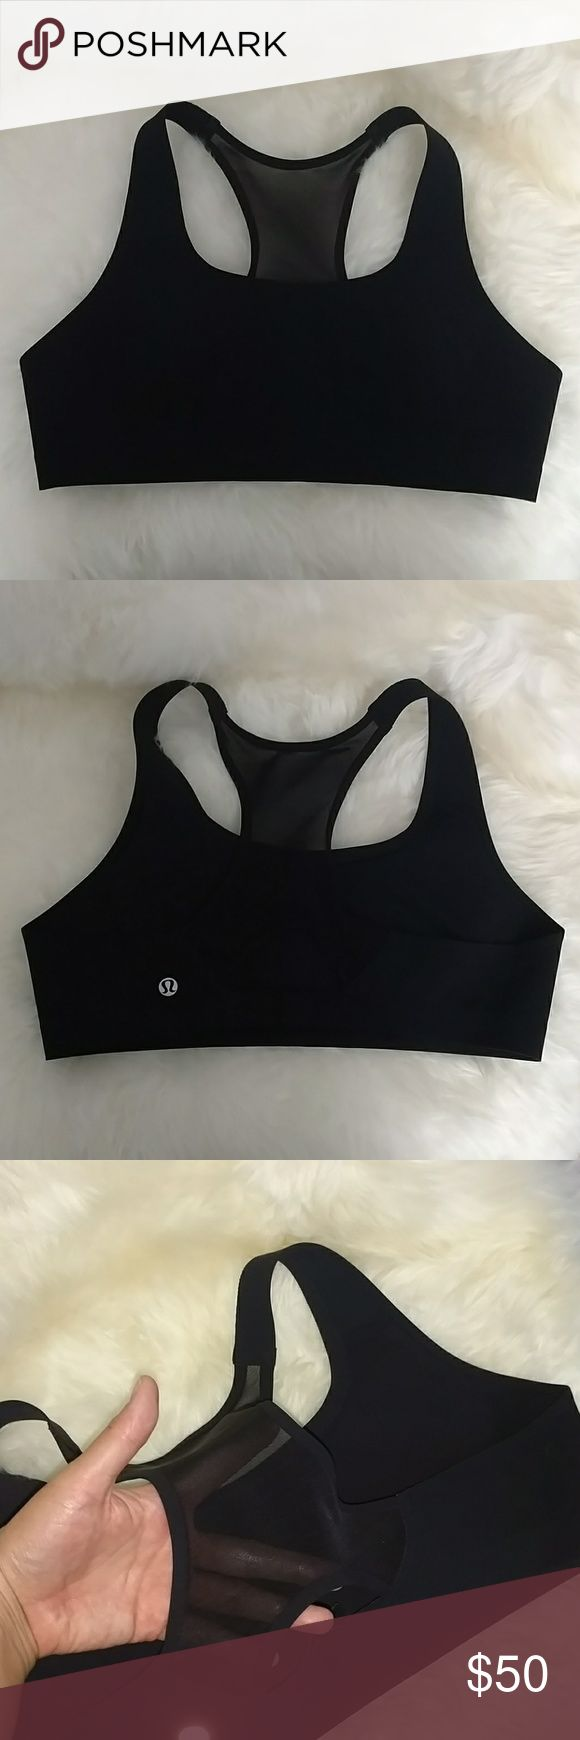 Lululemon Mesh Max Support Bra - 38C Black seamless Lululemon bra in 38C. This is the Bitty Bracer Bra. Only used twice and in excellent condition. Has a mesh back with adjustable hook and eye closure as well. Fits snugly and with maximum support for running. Bonded construction molds to your body shape as it warms up and is chaff-free. Pads included. lululemon athletica Intimates & Sleepwear Bras